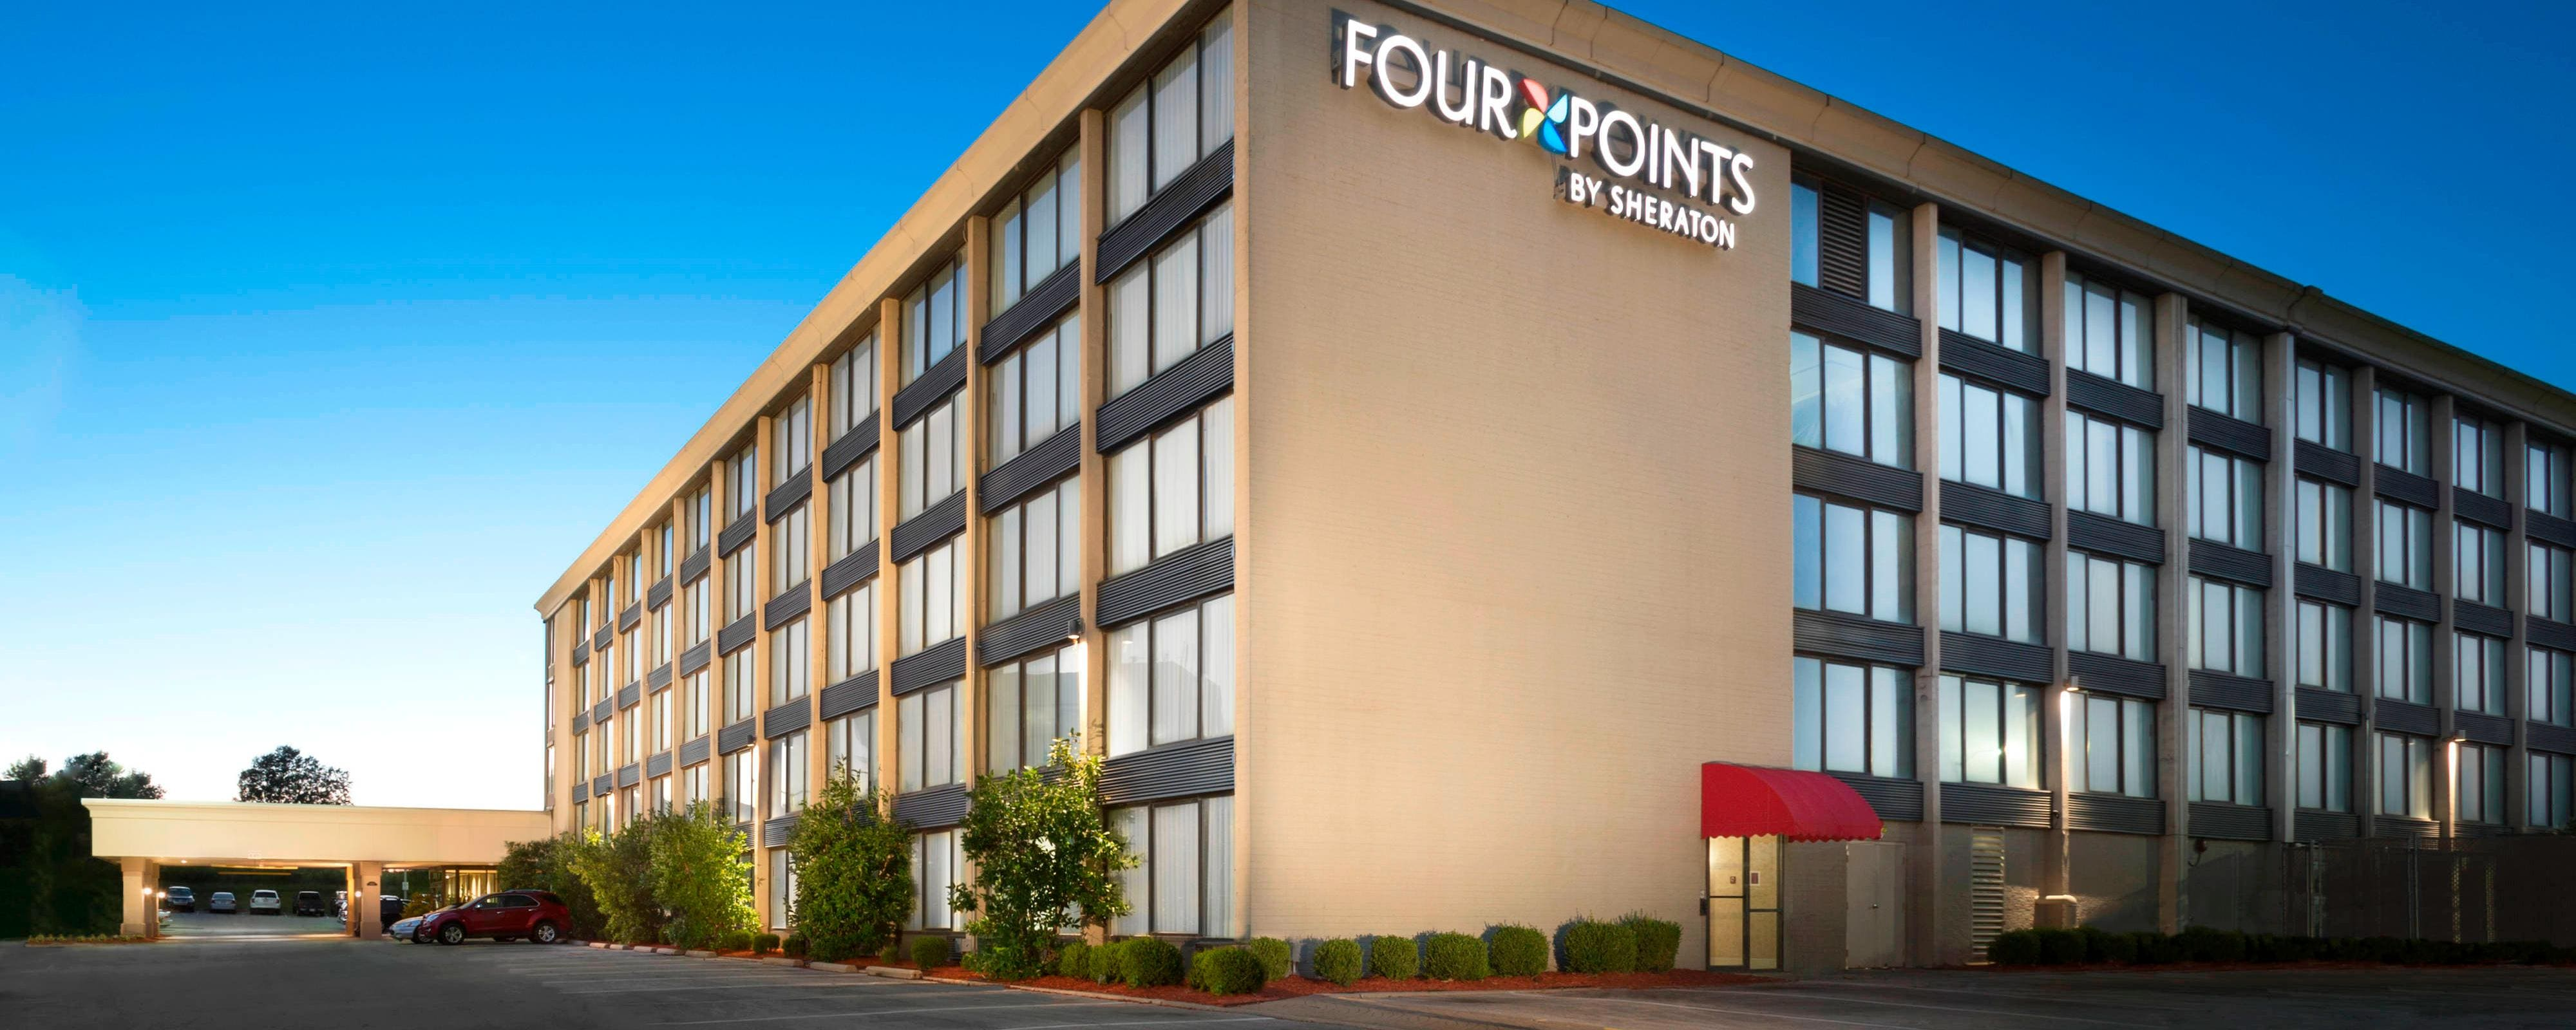 Kansas City Hotels Near Airport Four Points By Sheraton